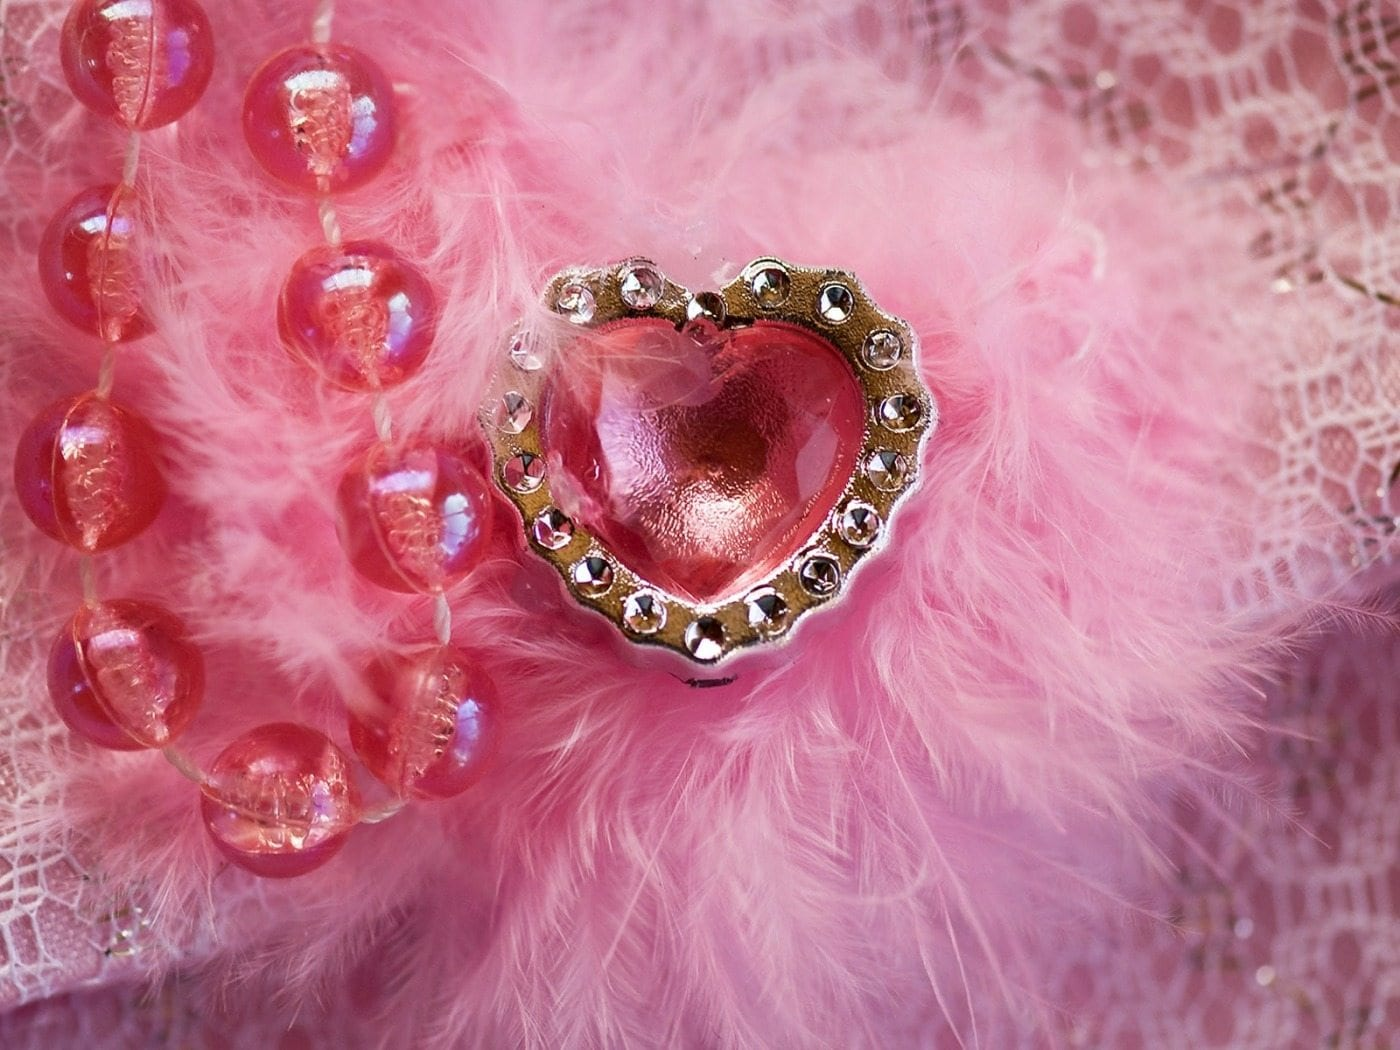 Pink-Heart-in-Feathers-1400x1050-wide-wallpapers.net